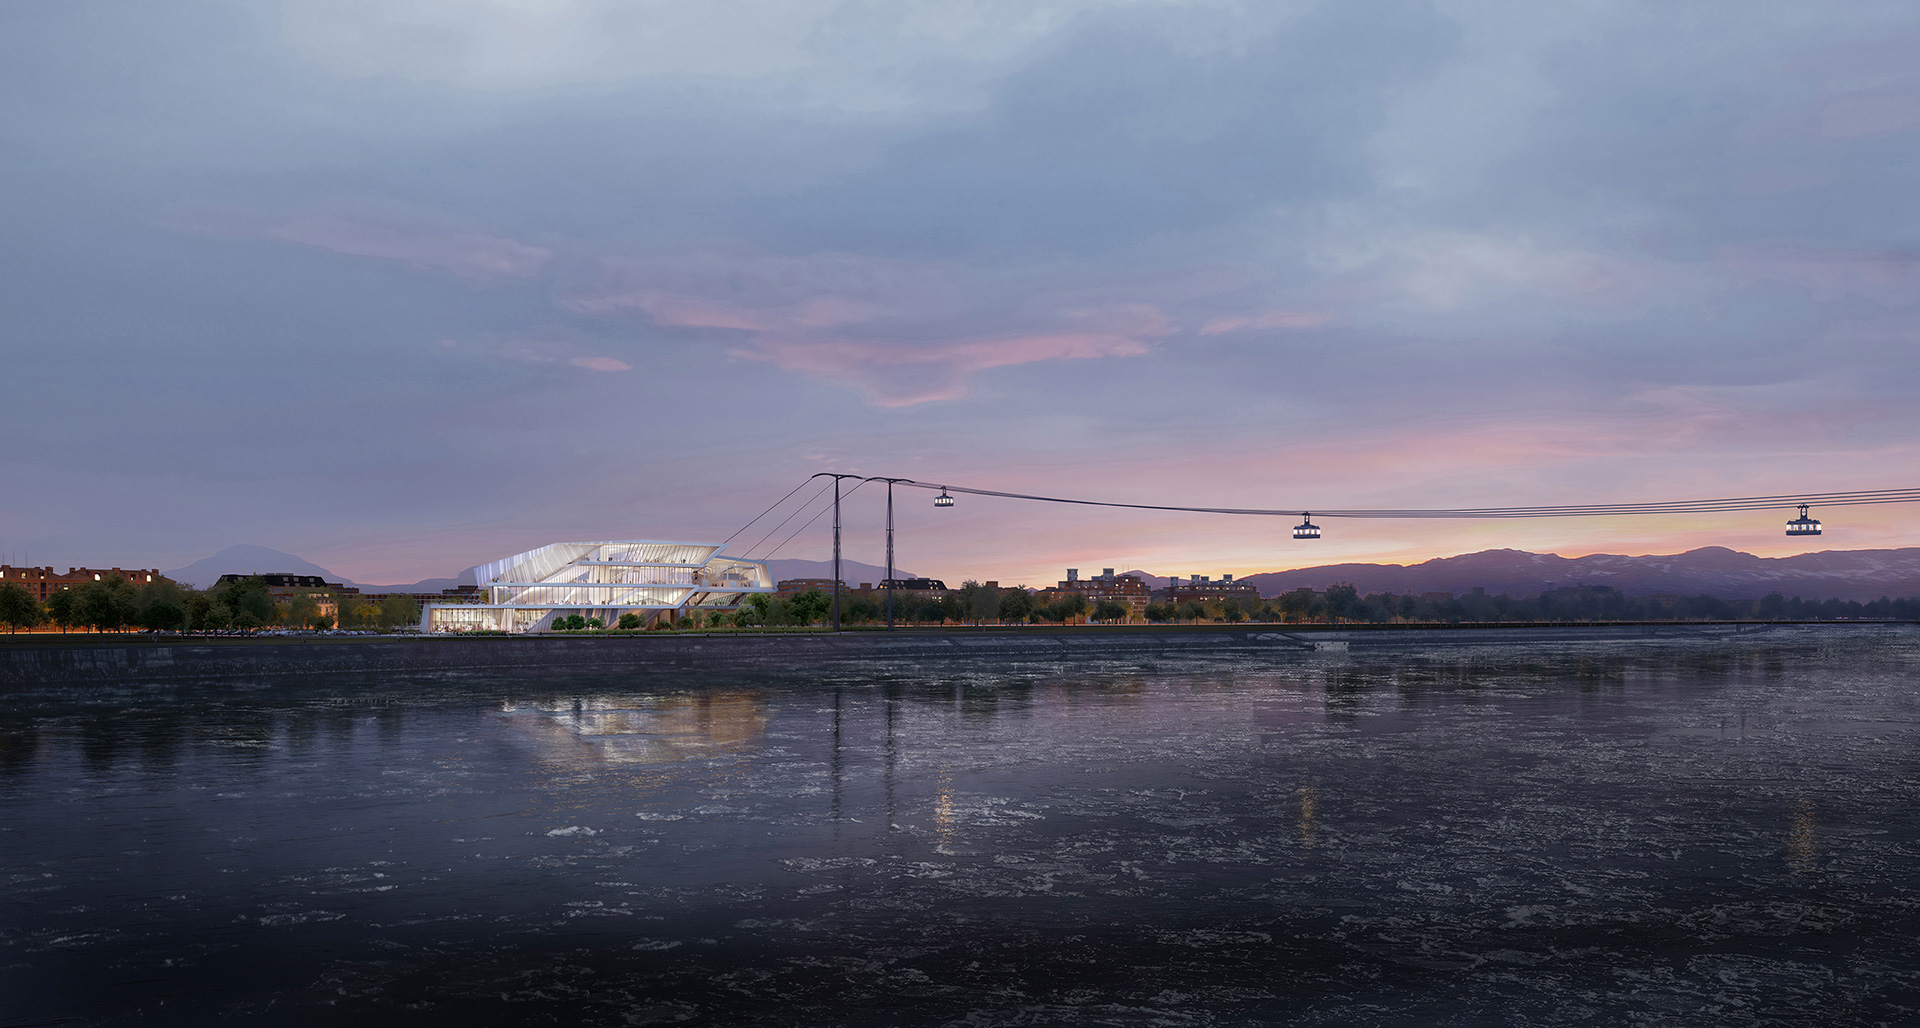 Panoramic view of the Blagoveshchensk terminal and the cable cars running over the Amur river|  Blagoveshchensk-Heihe cable car | UNStudio | STIR